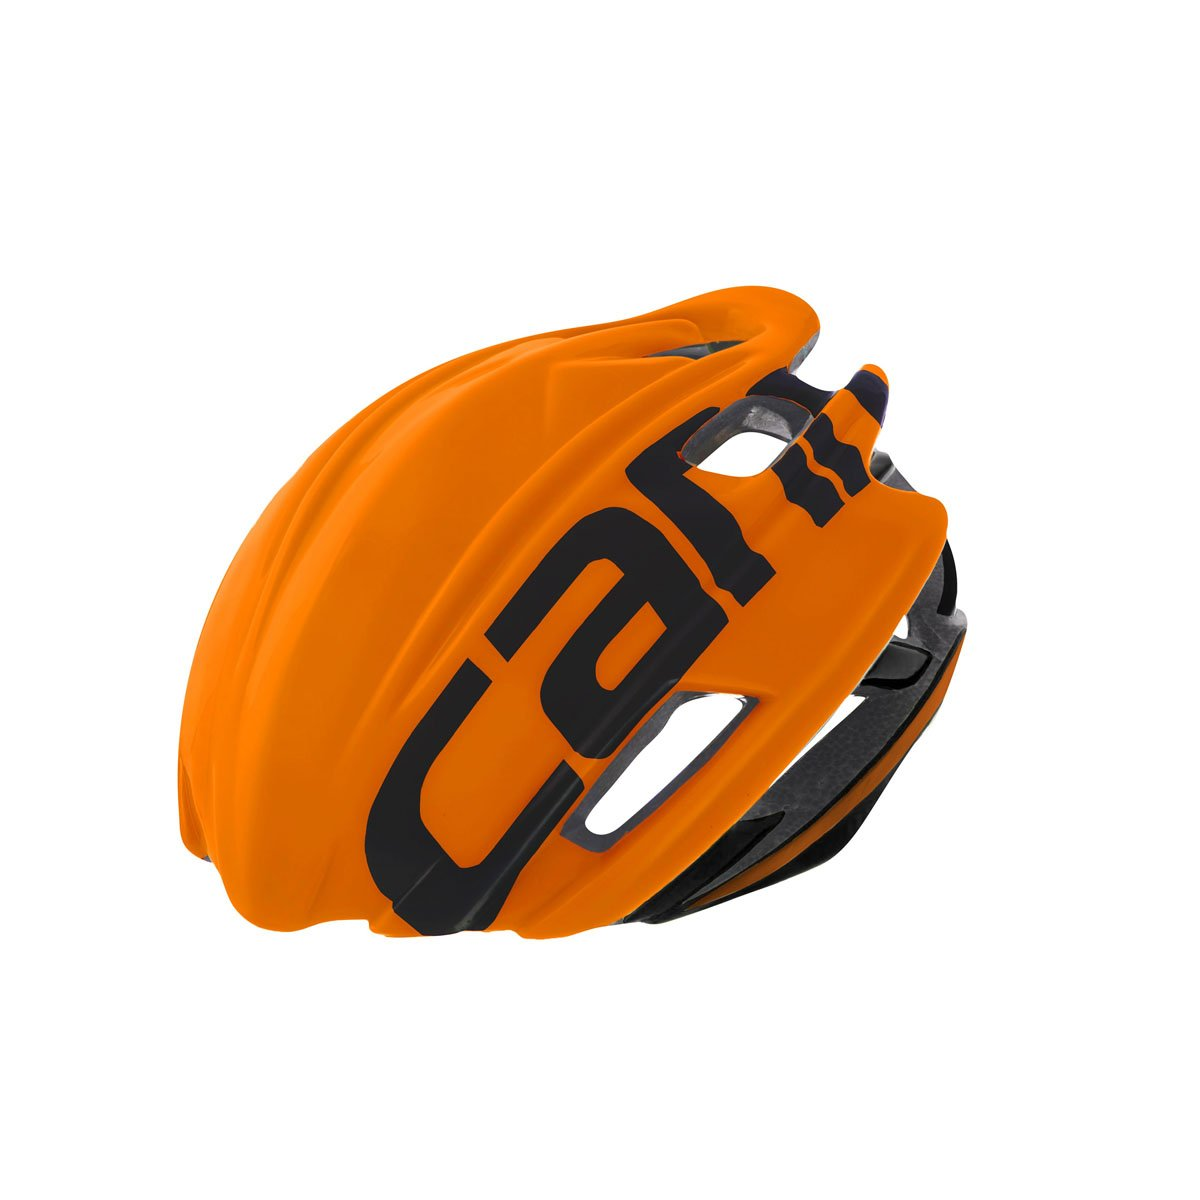 Cannondale 2017 Cypher Aero Bicycle Helmet (Orange - L/XL)